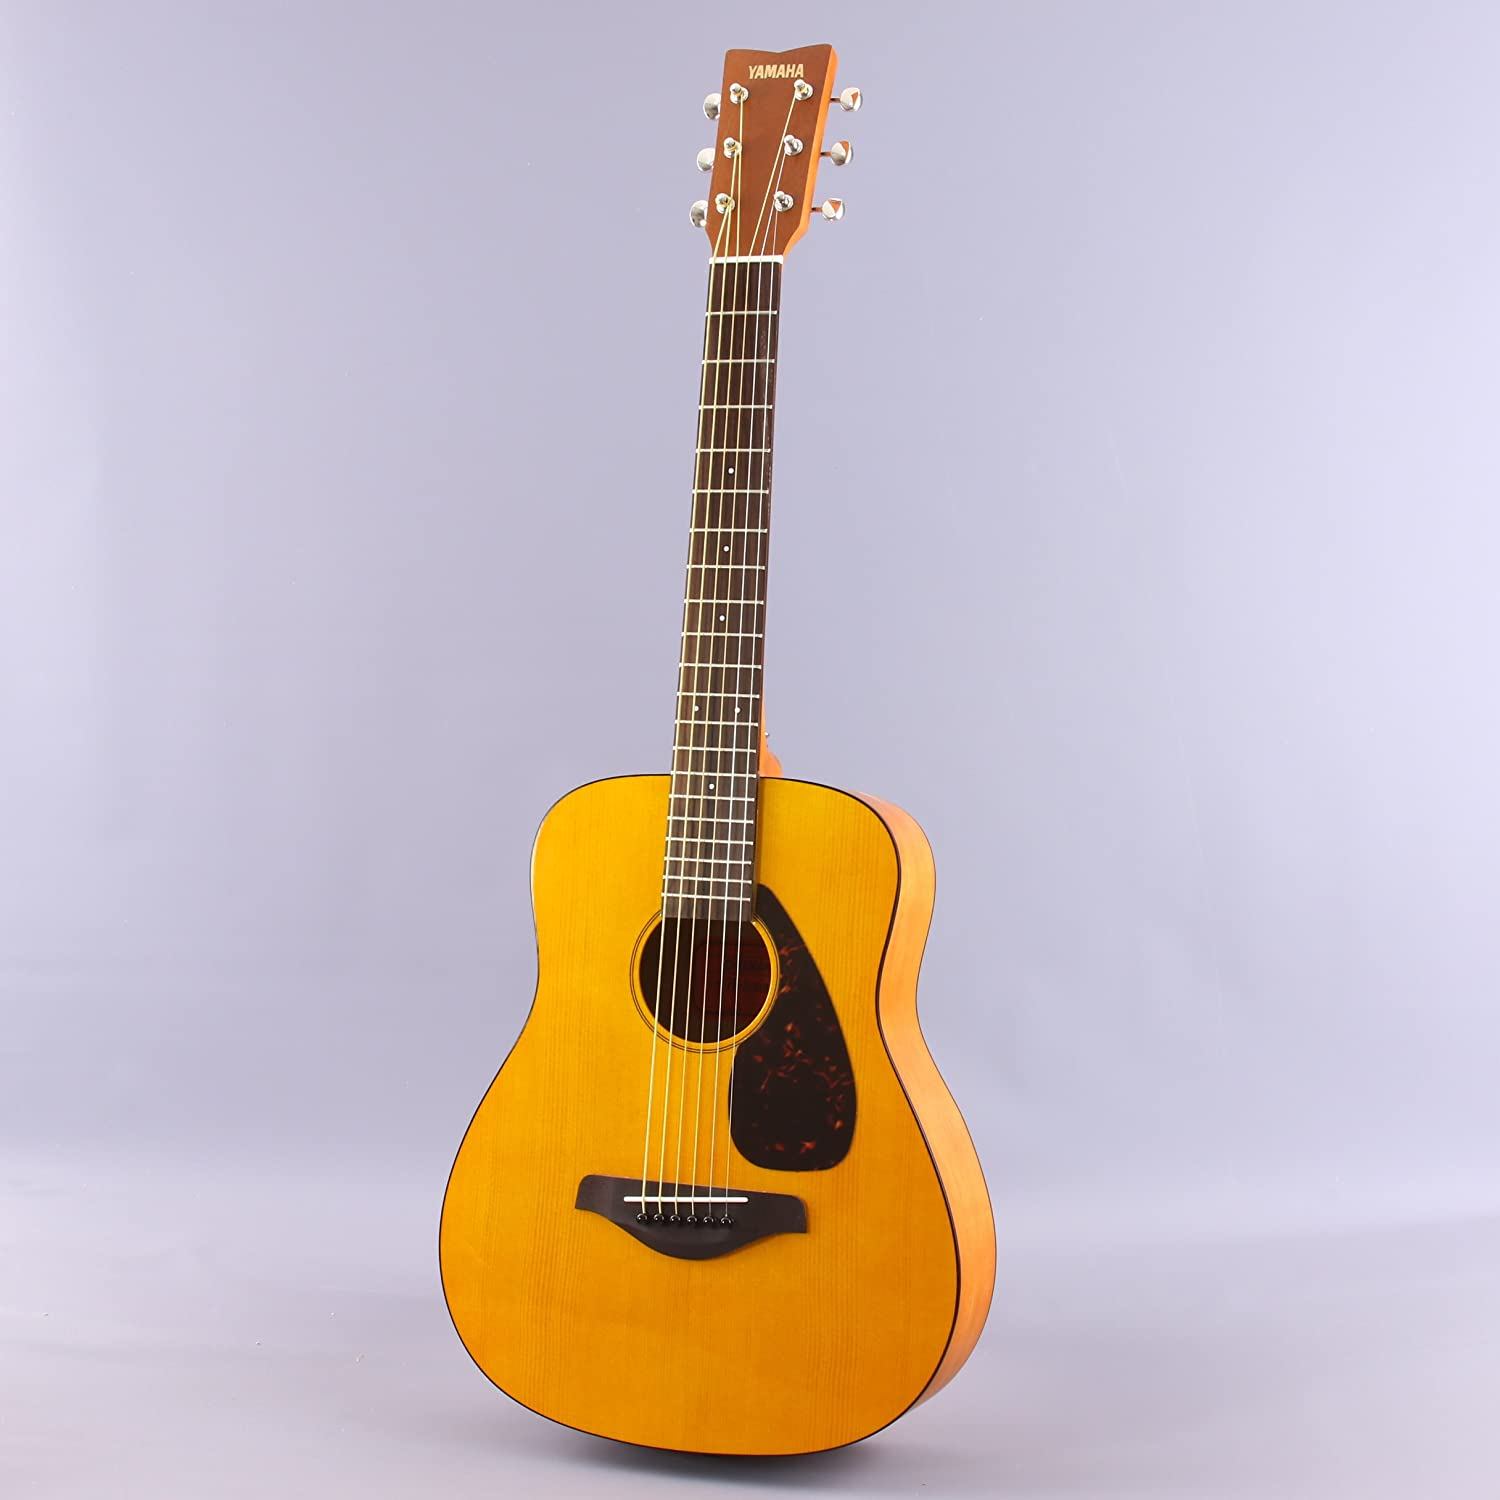 Top 7 Options For The Best Travel Guitar Full Buyer S